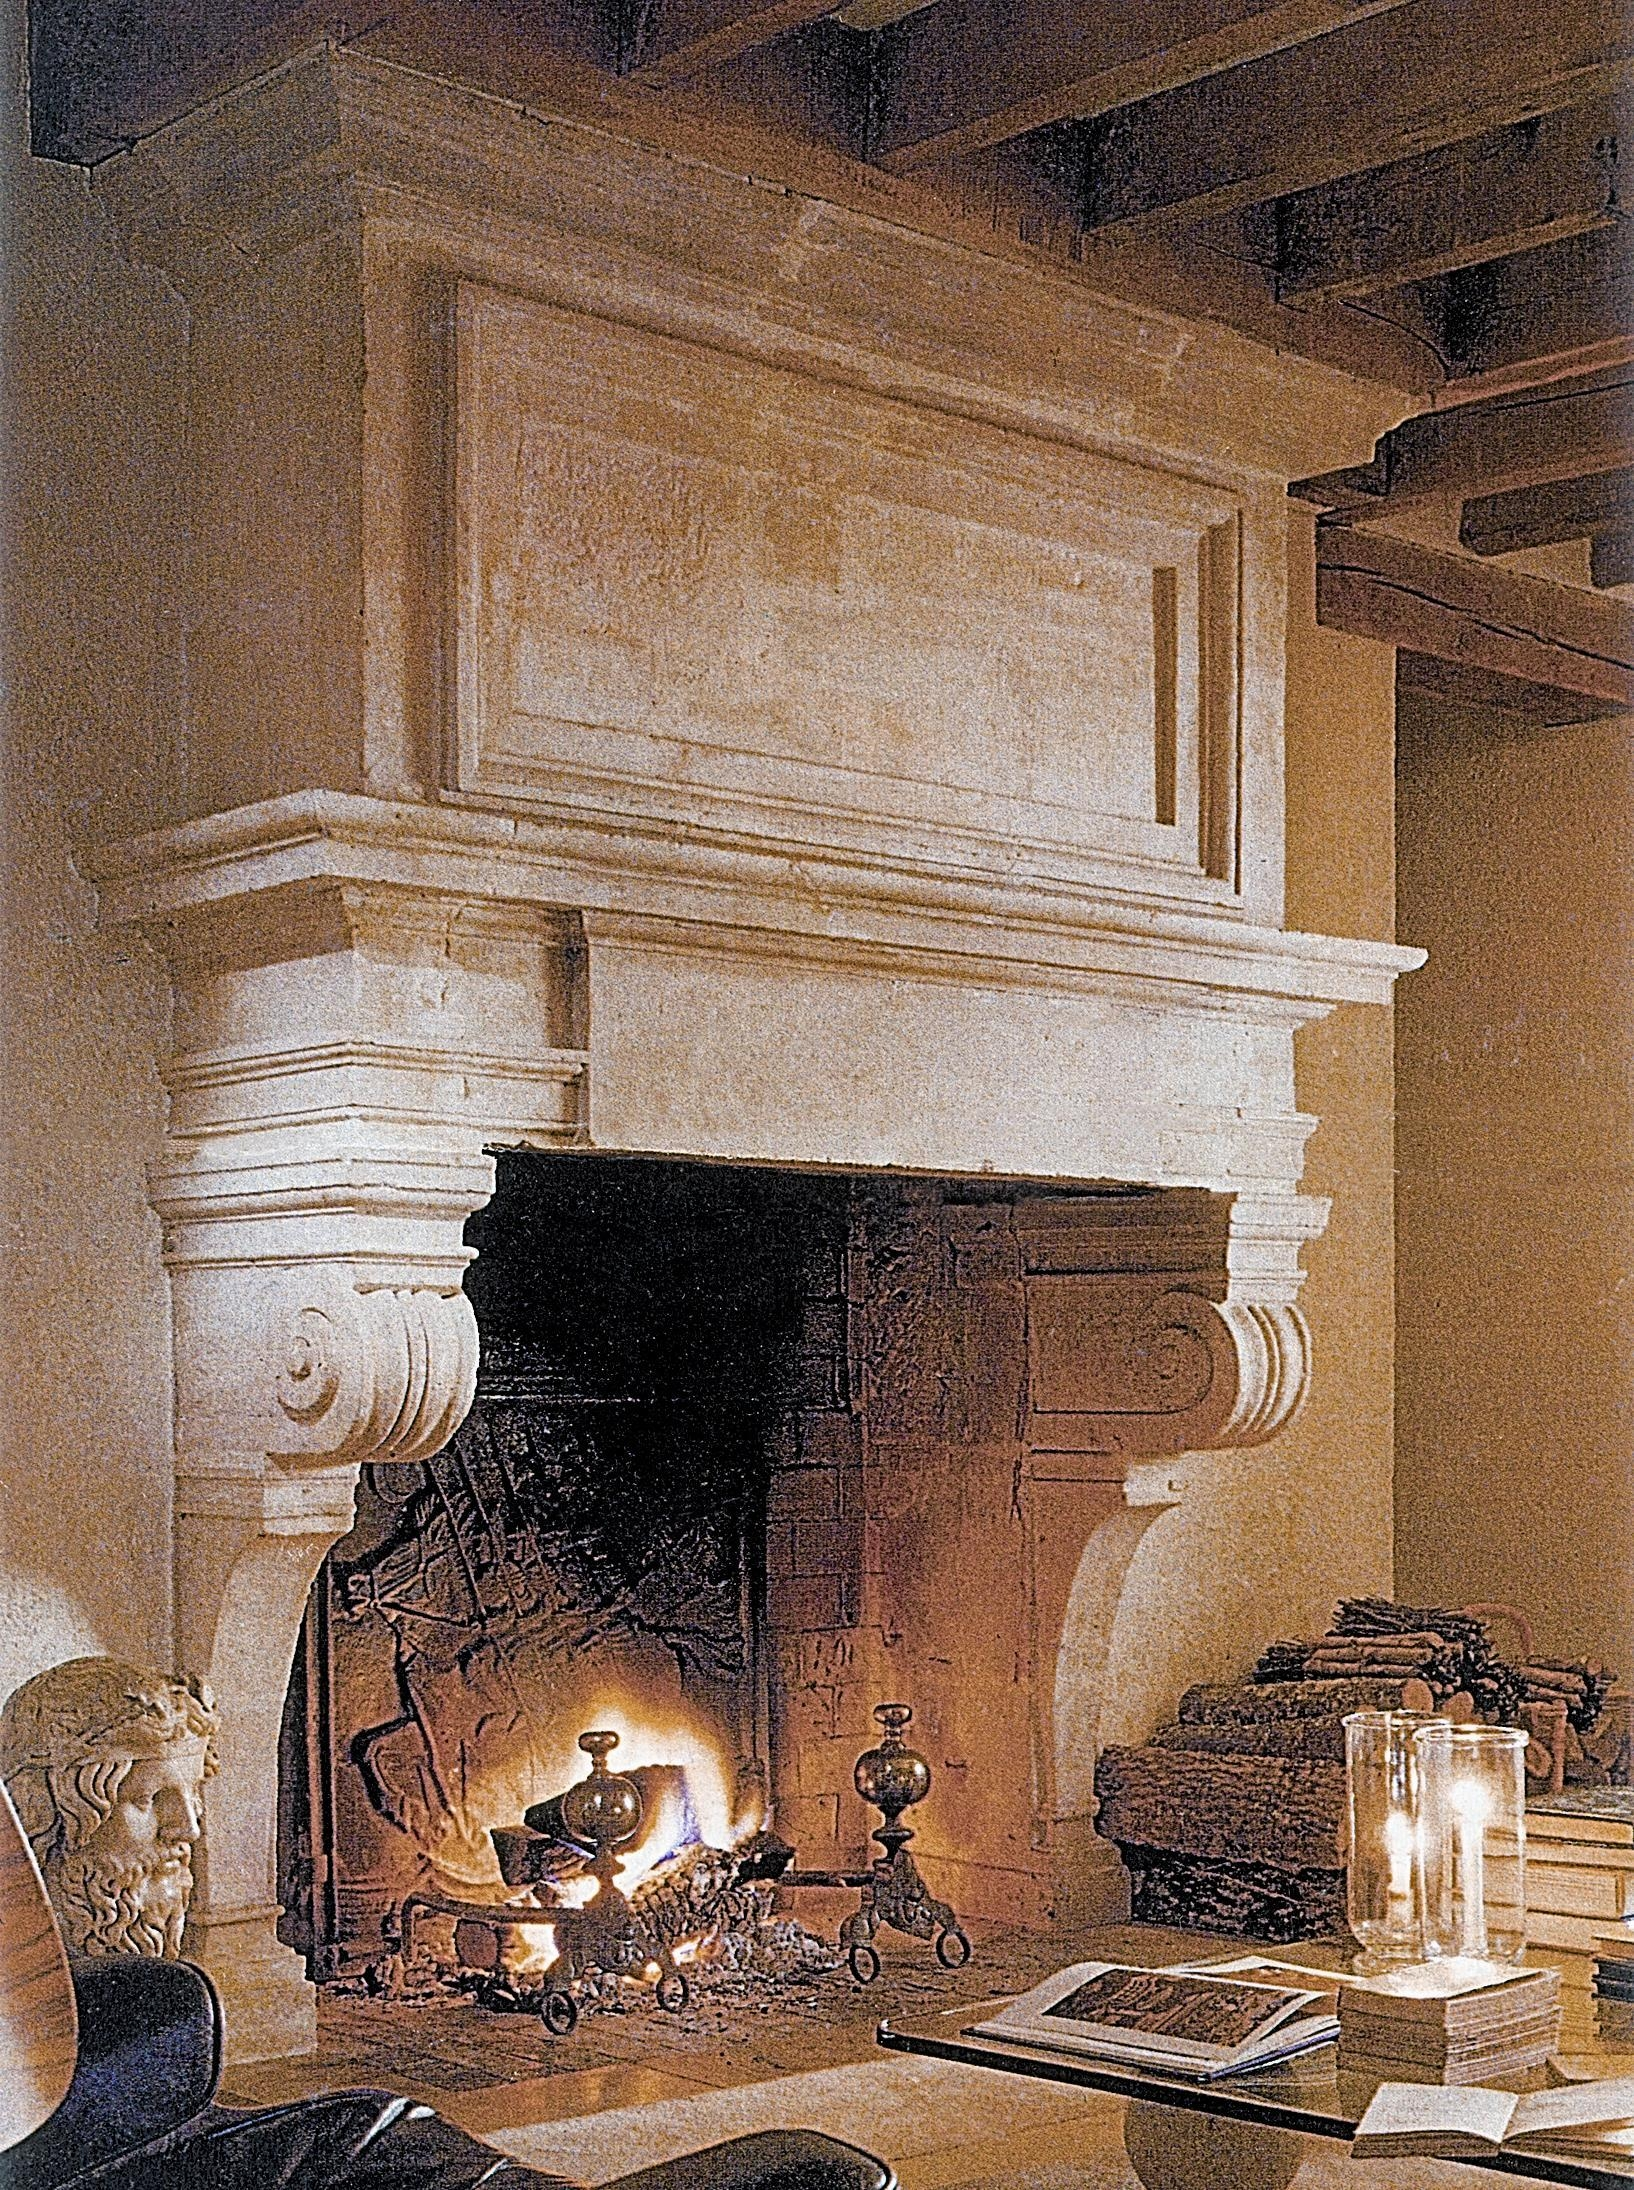 Stone Age Designs' Fireplace Mantels Recreate An Italian With Regard To Italian Renaissance Wall Art (View 11 of 20)